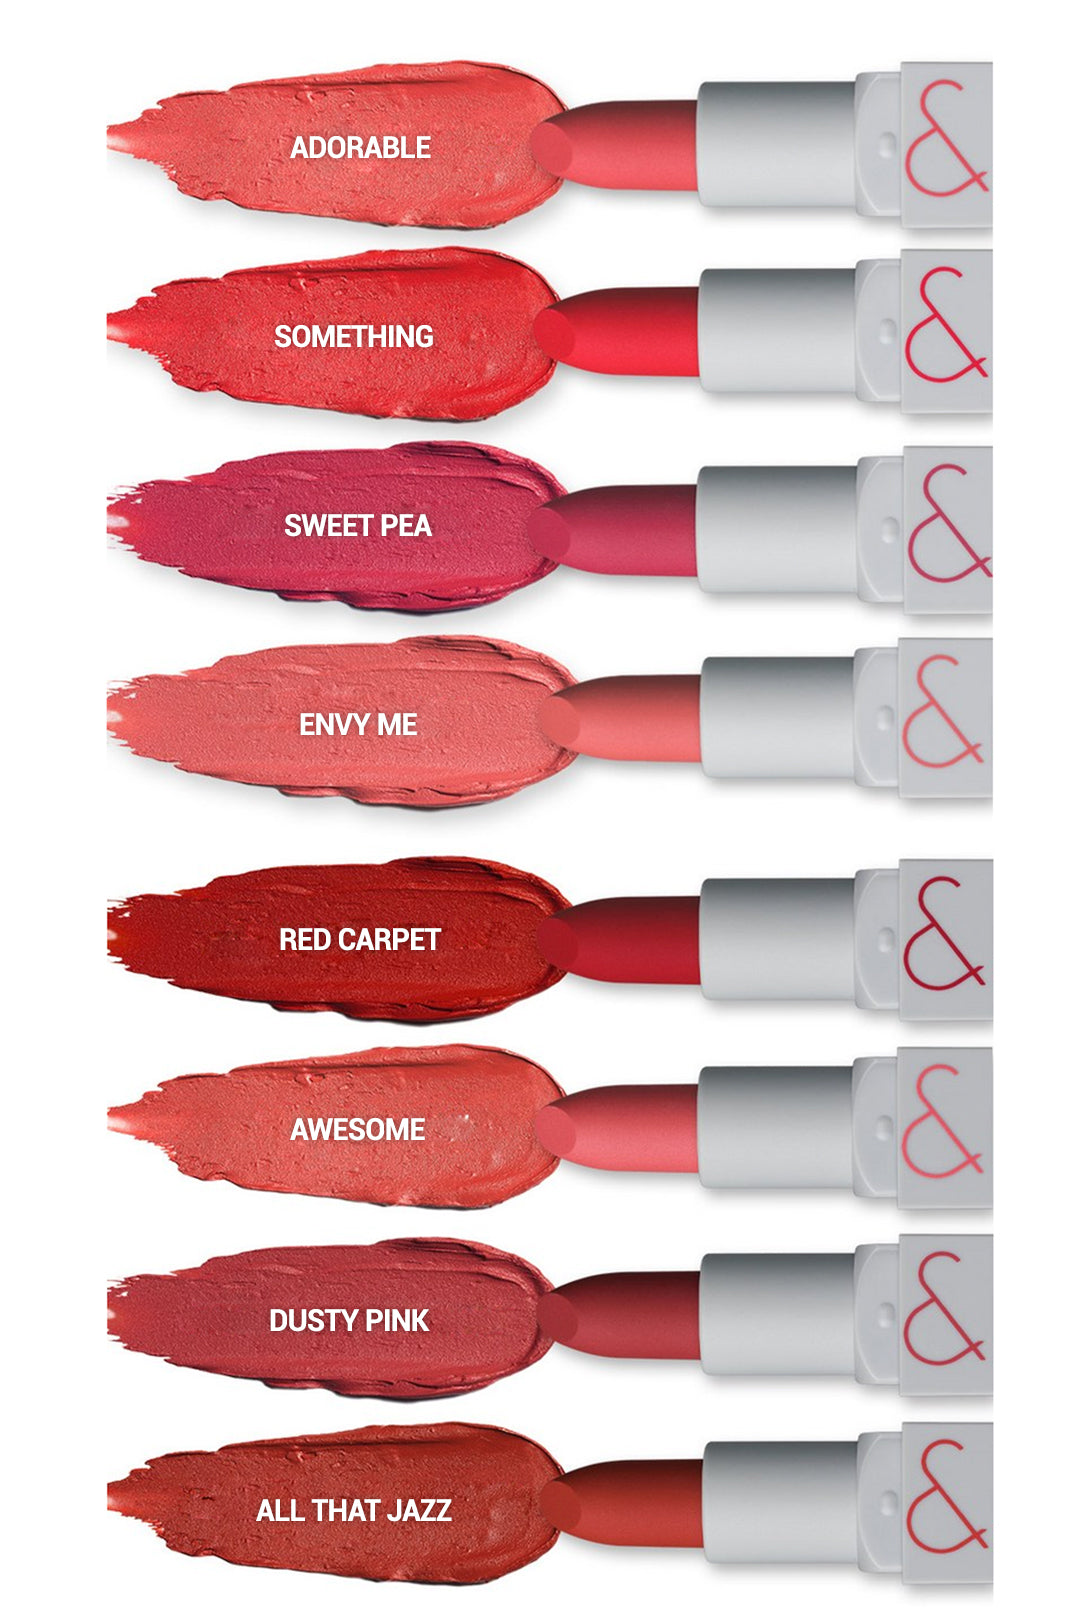 Rom&nd Zerogram Lipstick - Adorable